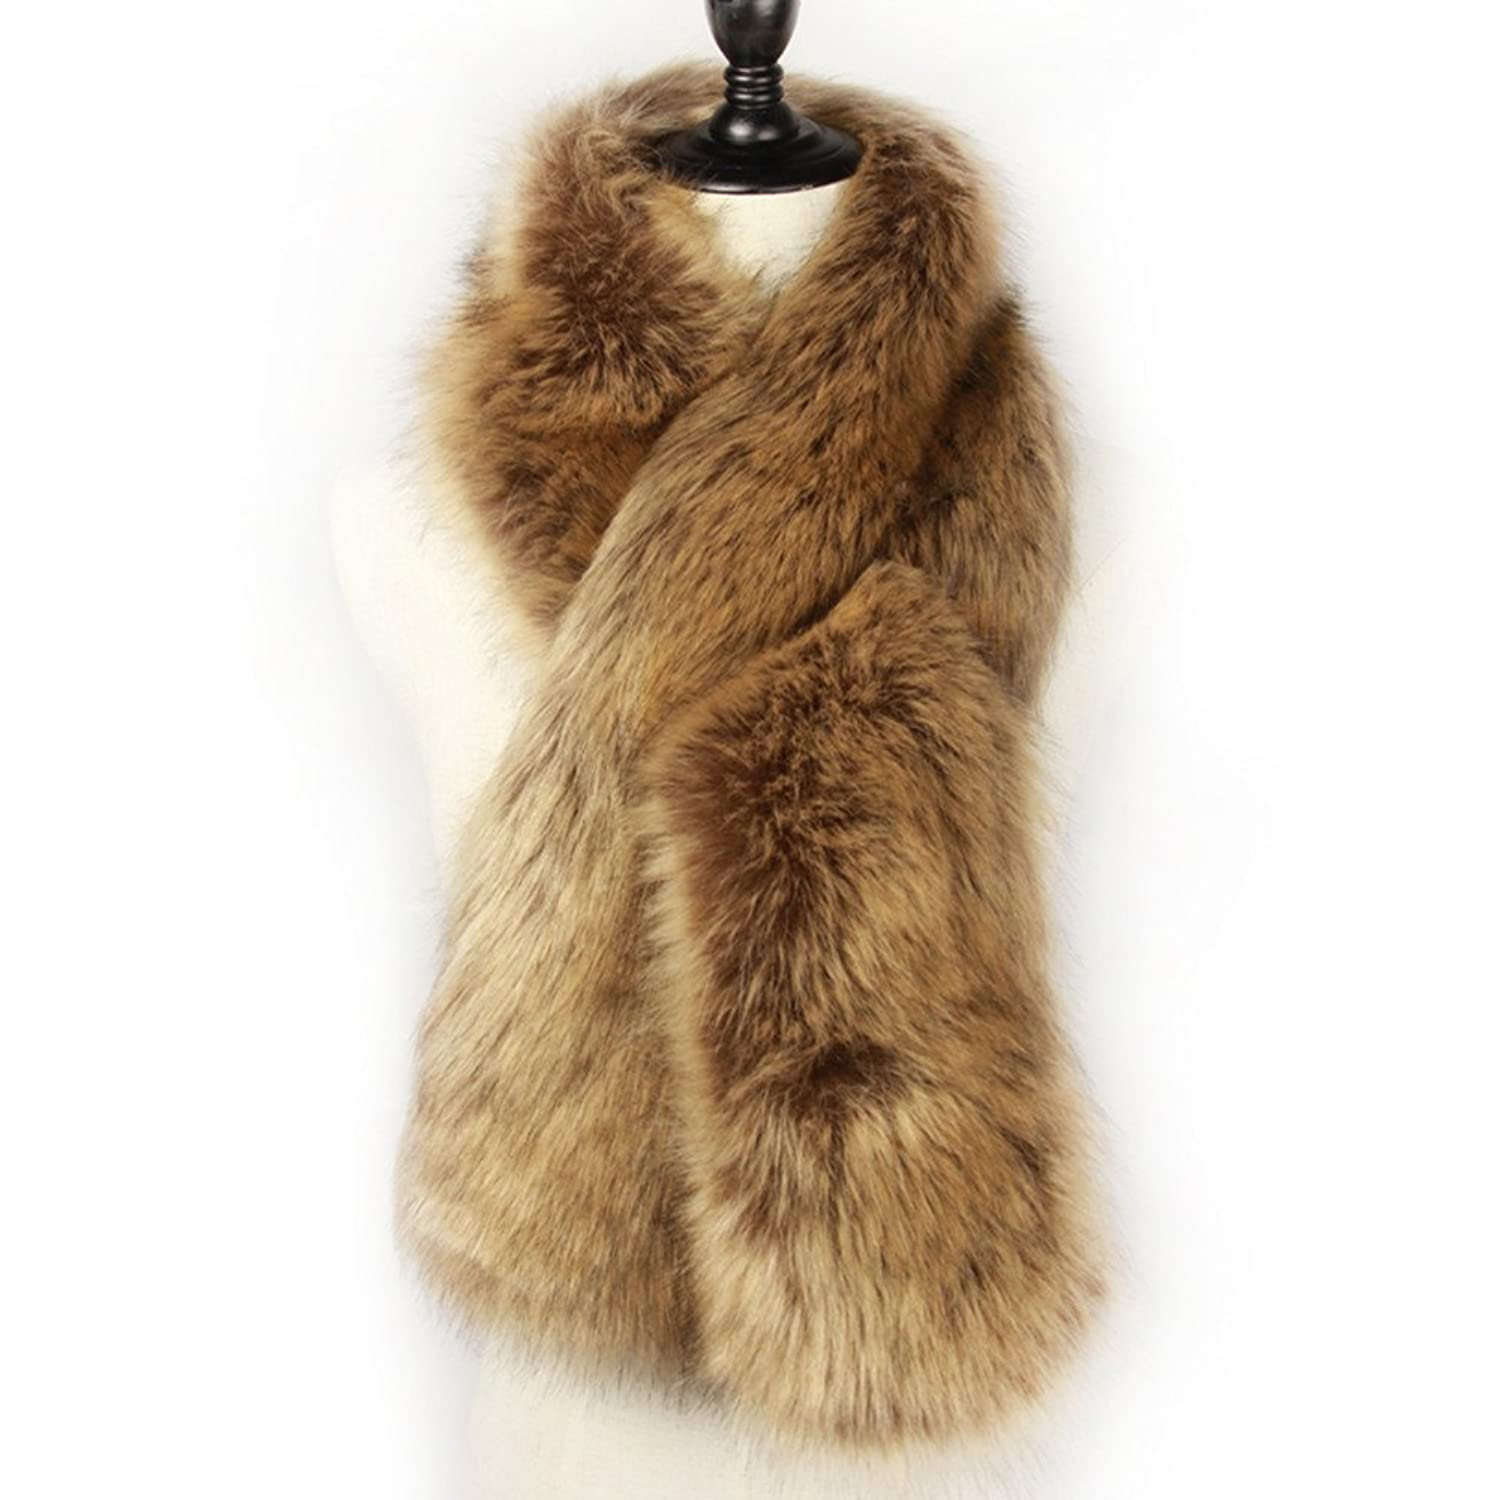 Vintage Coats & Jackets | Retro Coats and Jackets  Faux Fur Scarf Wrap Collar Shawl Shrug $15.99 AT vintagedancer.com